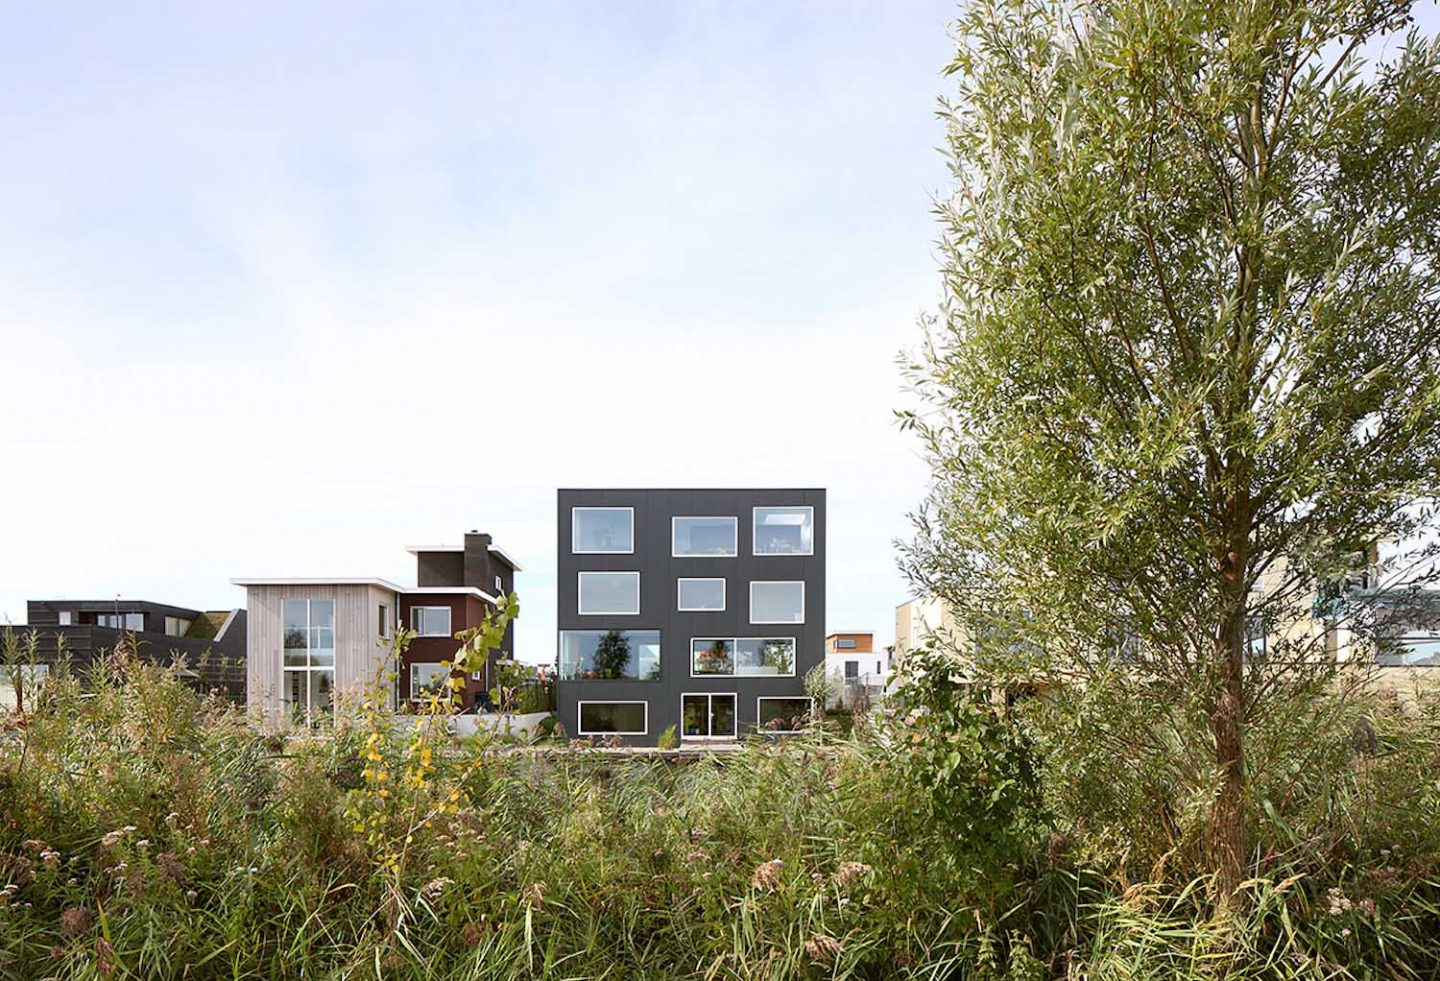 ignant_architecture_mka_woning_almere_small_01